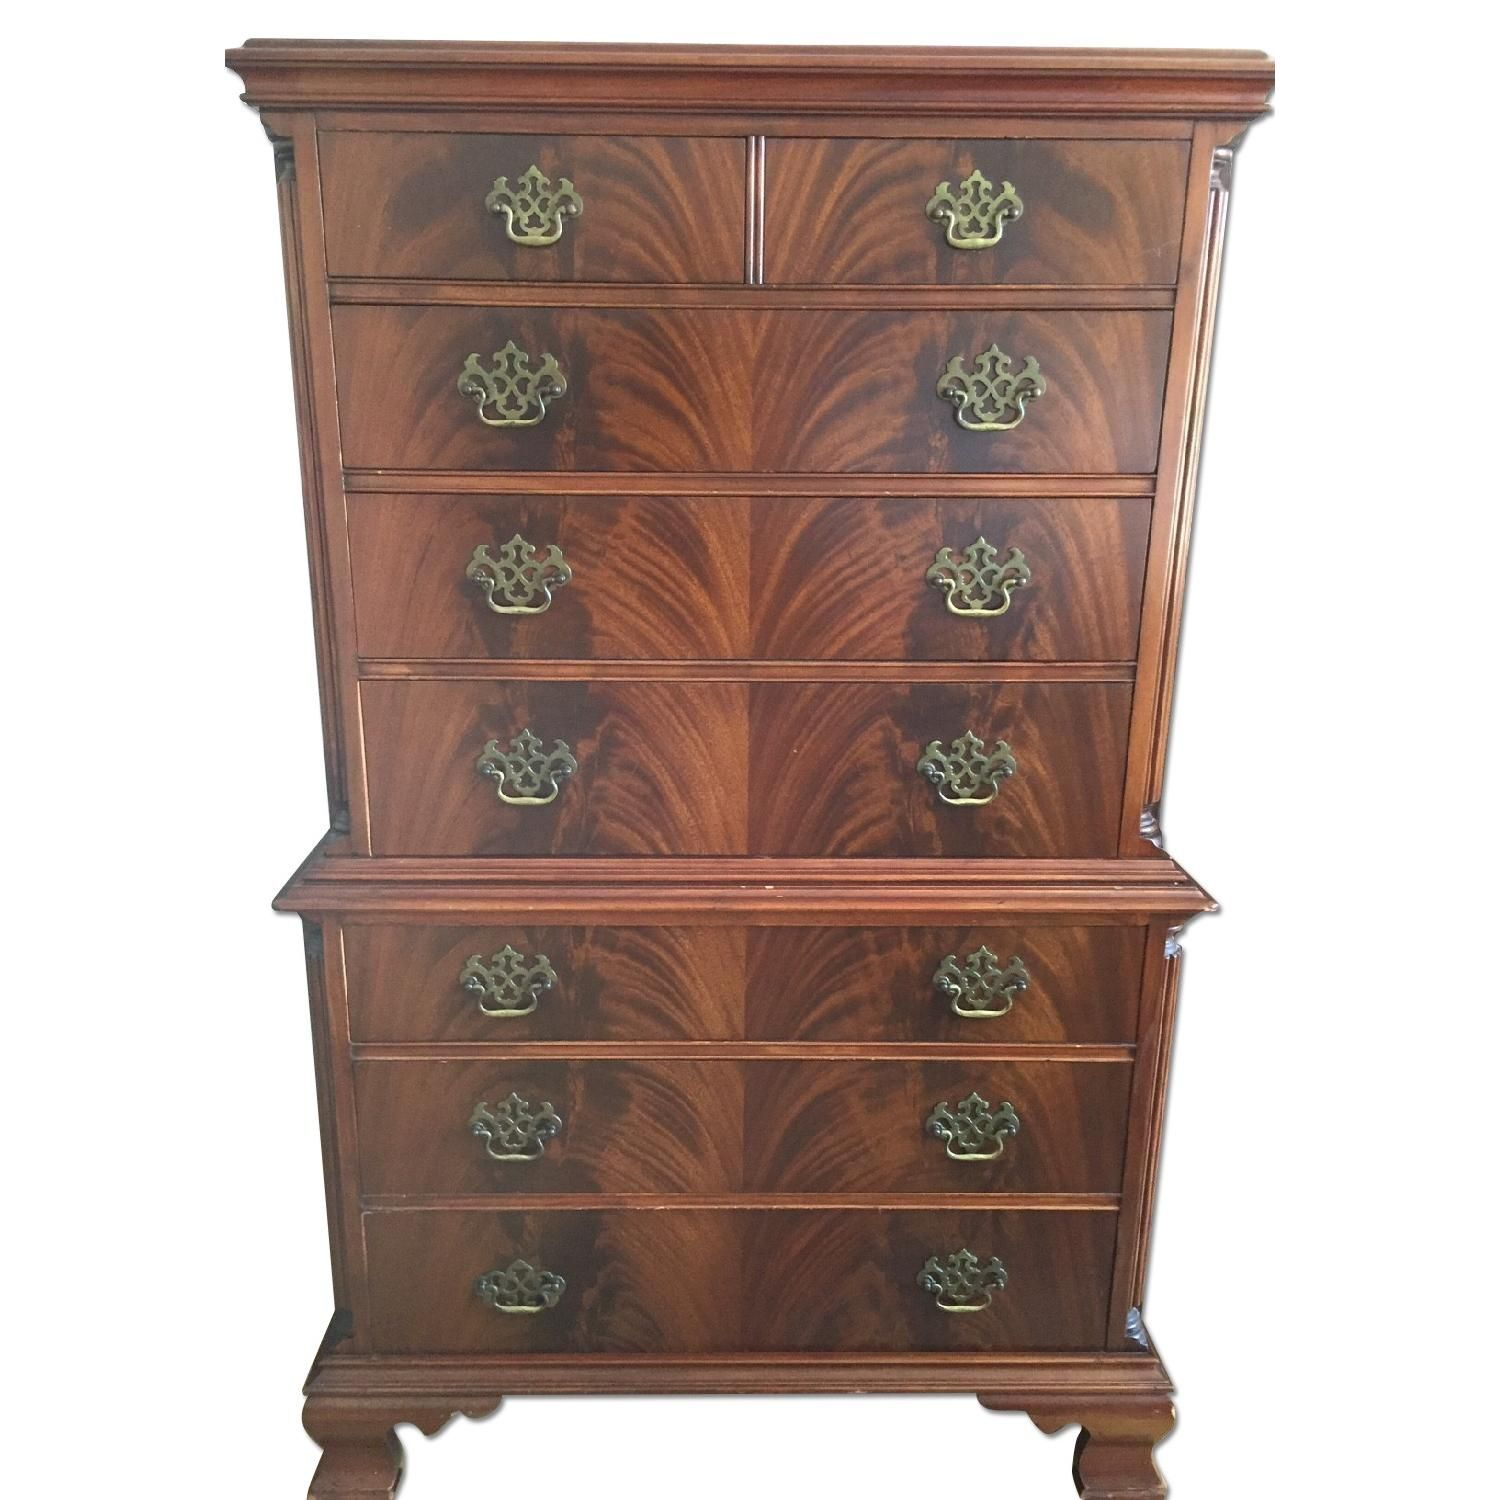 This Is A American Furniture Company Antique 8 Drawer Dresser In